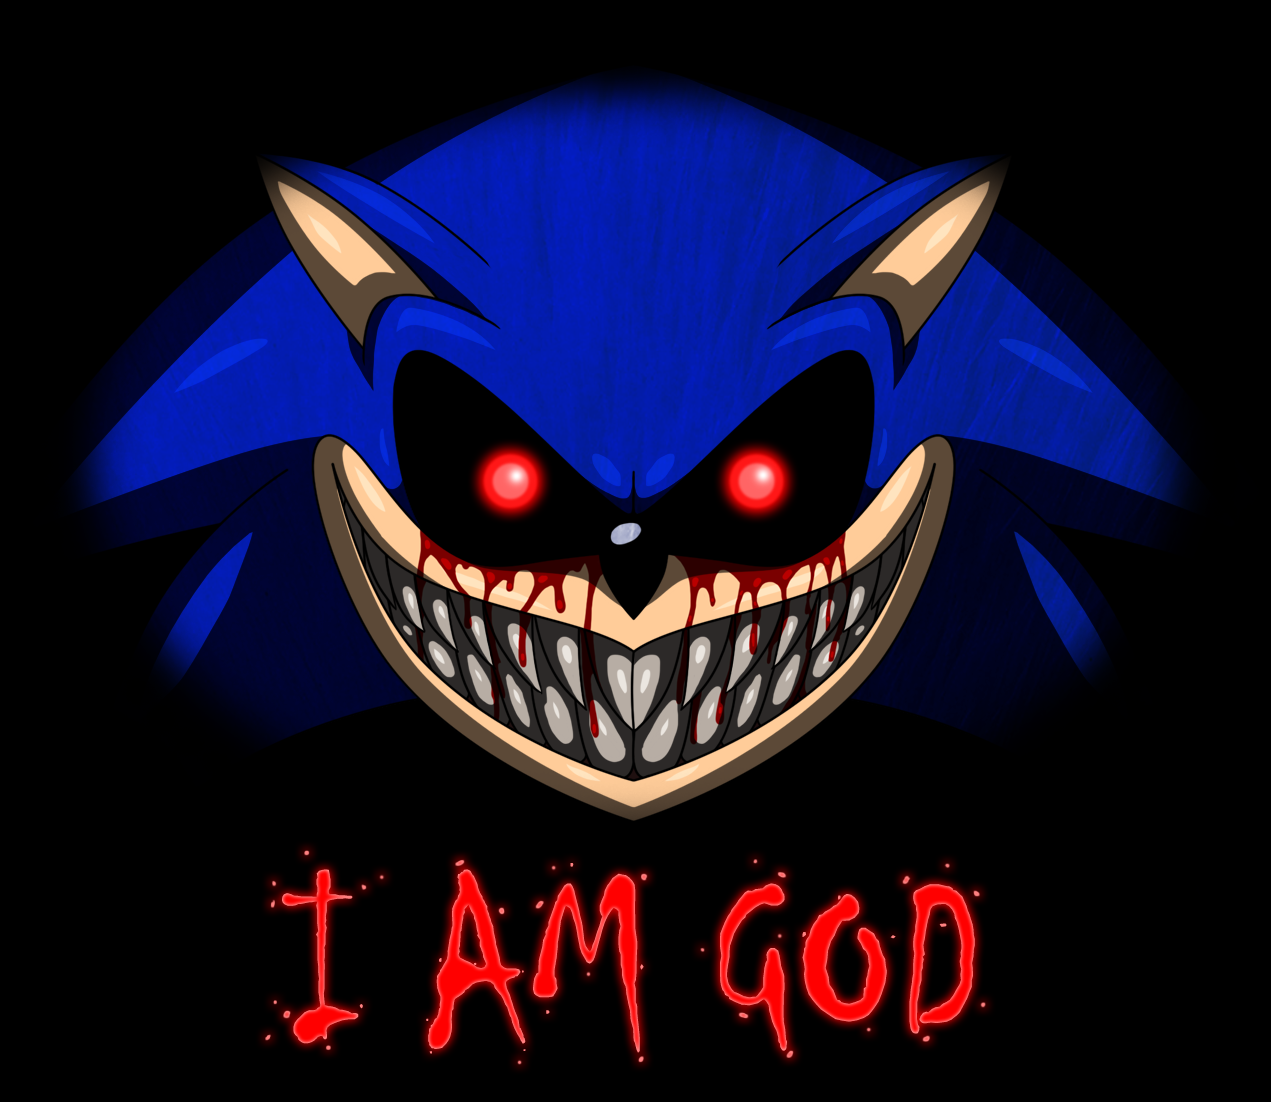 Sonicexe sonicexe know your meme iam god sonic colors tails fictional character computer wallpaper thecheapjerseys Gallery